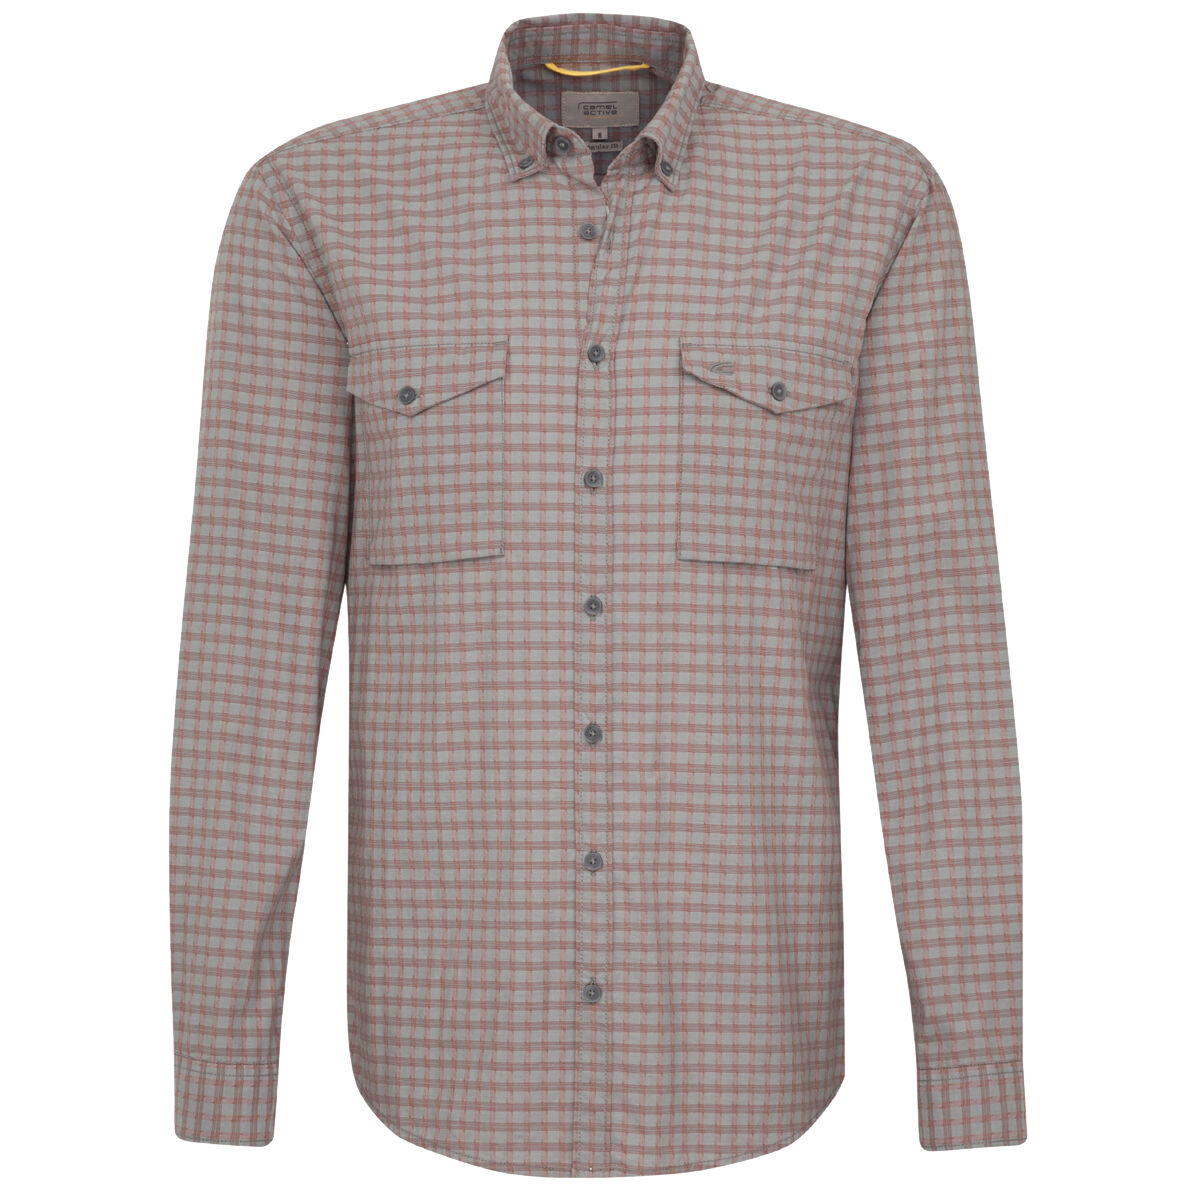 many styles buy good factory outlets Casual-Hemd regular fit Langarm Button-Down-Kragen Karo, stone, XL